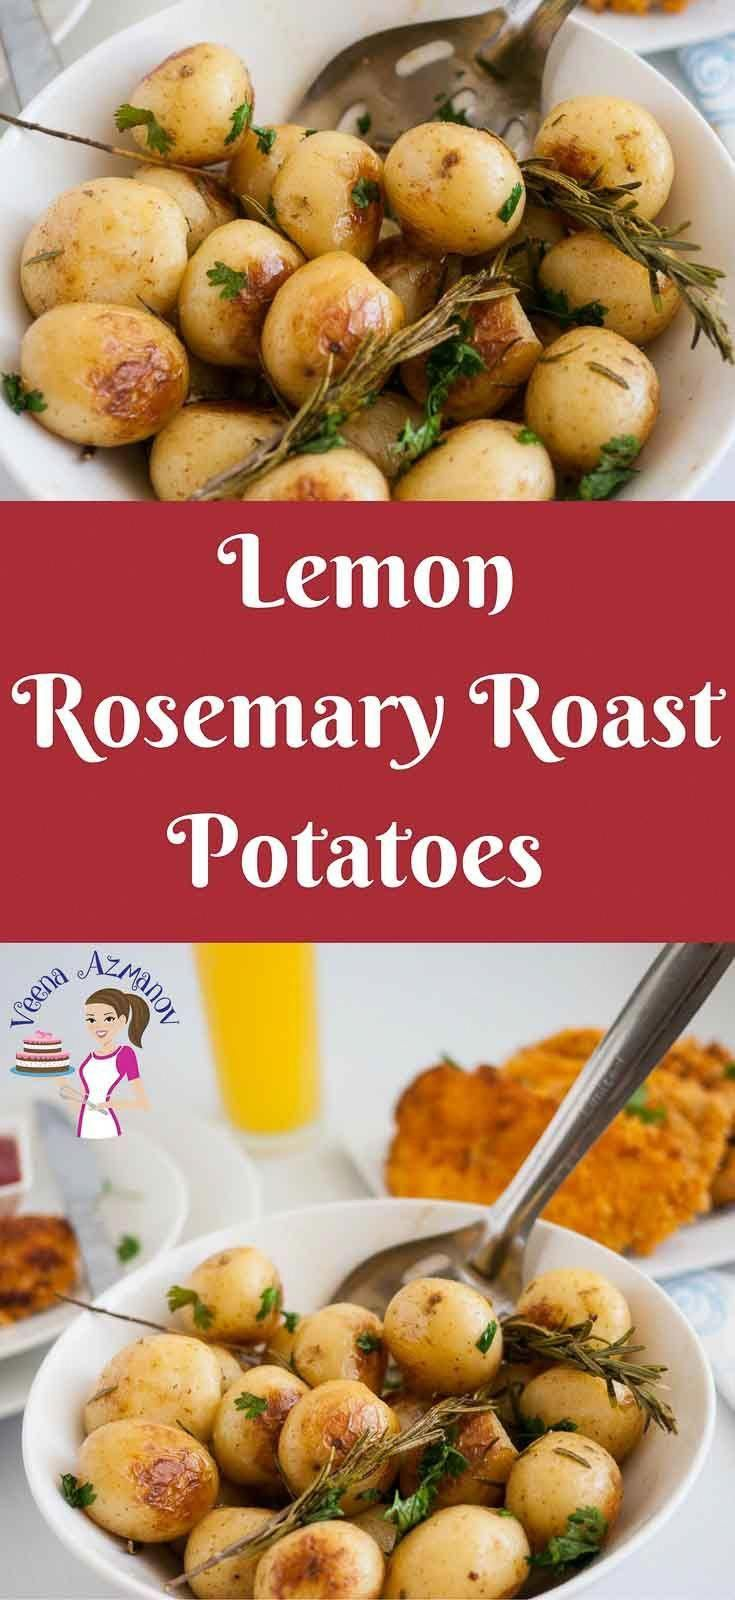 These lemon rosemary roast potatoes are a perfect side dish to serve along side any dinner be it roast chicken, turkey or a rack of lamb.  Perfect roast potatoes are an absolute treat weather you serve them on a week day or a special celebration for Thanksgiving or Christmas #NiceLambRecipes #chickensidedishes